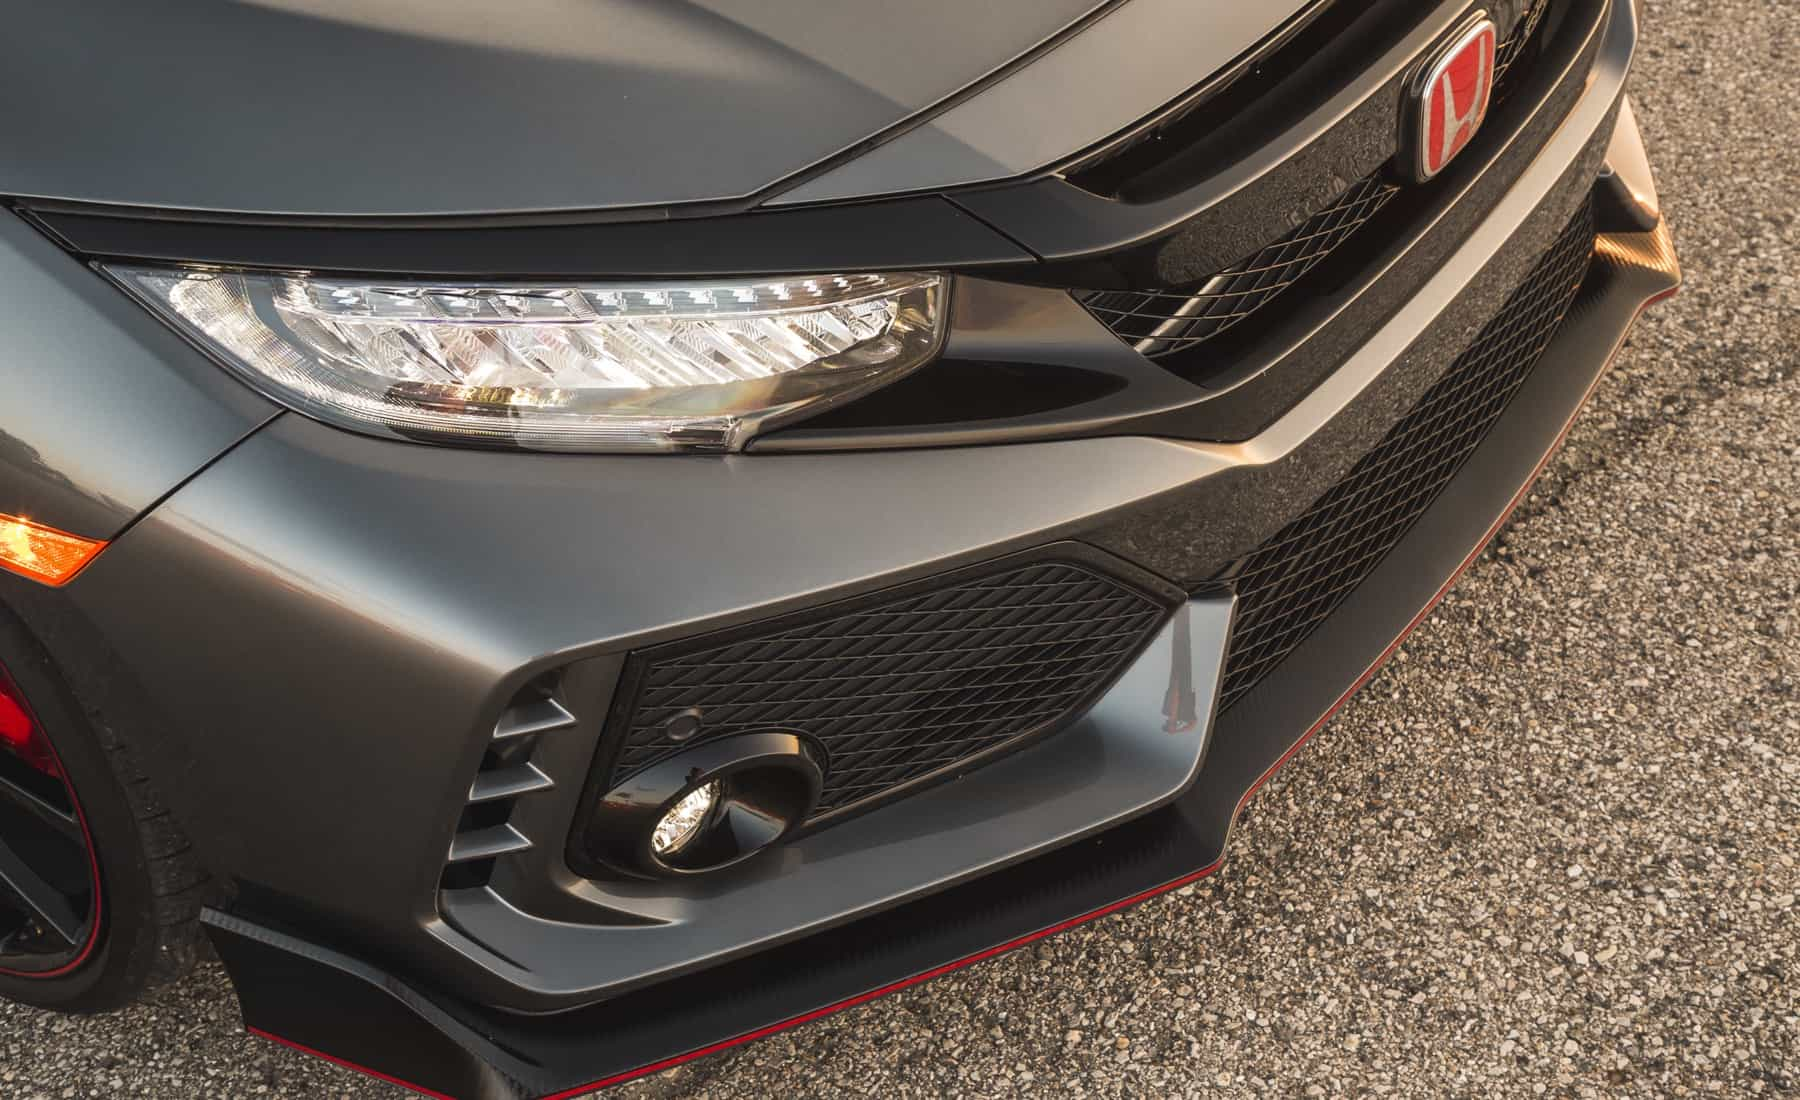 2017 Honda Civic Type R Exterior View Headlight And Grille (Photo 37 of 48)